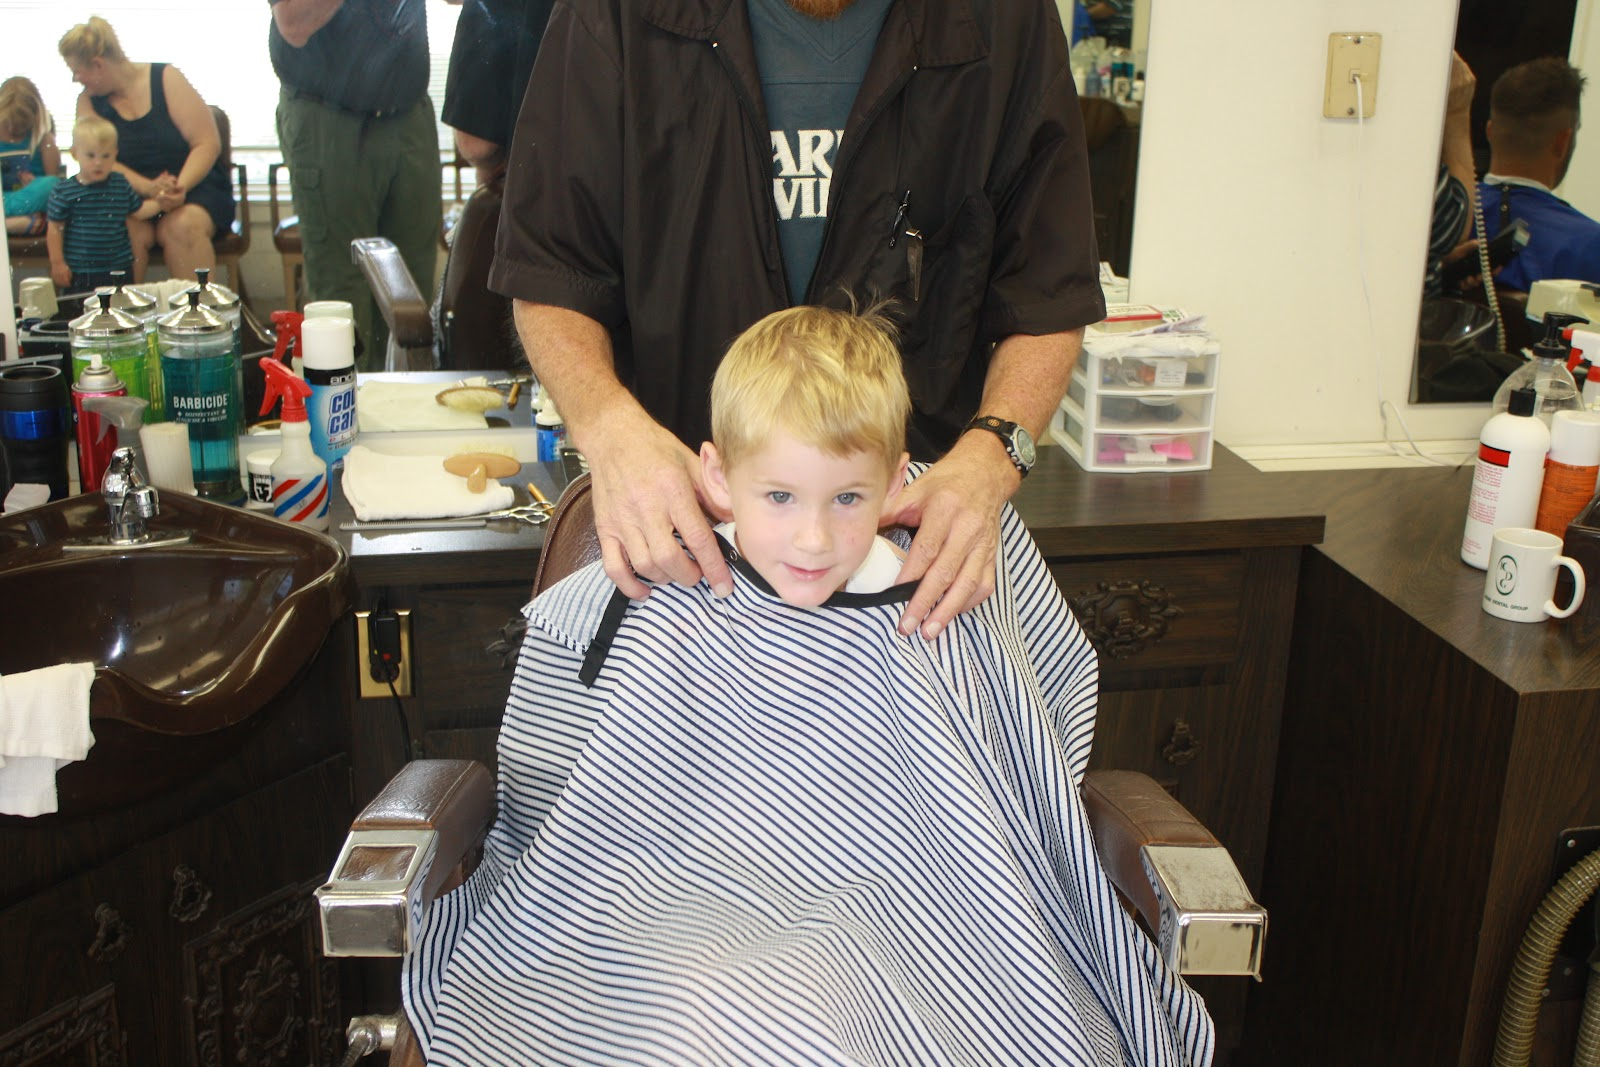 little boy chairs plans for adirondack her ways summer 2012 day 7 hair cuts